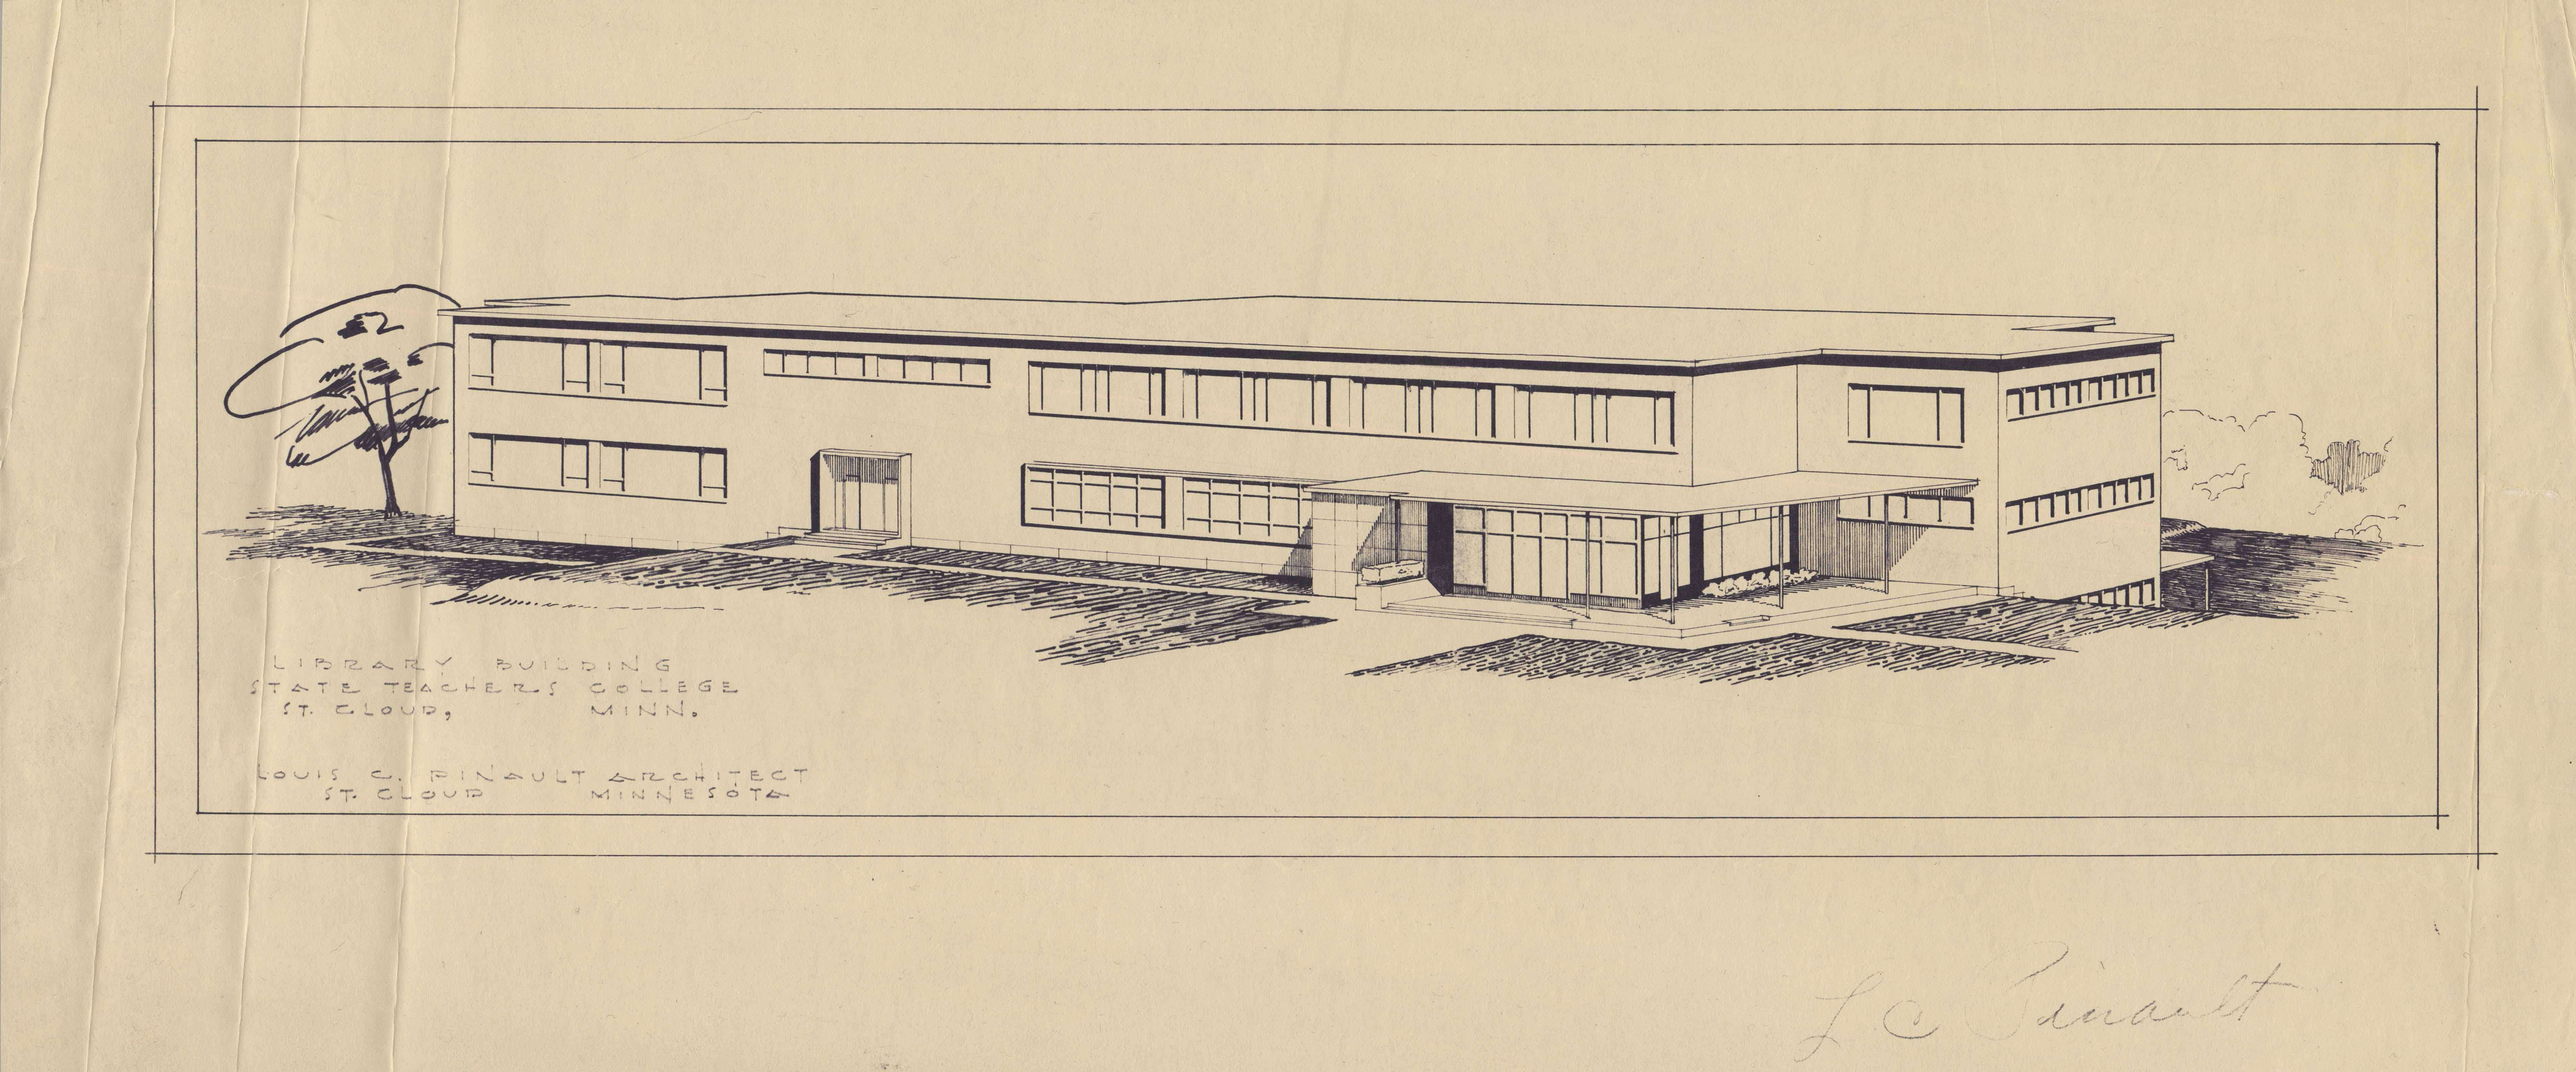 Architect rendering of Kiehle, ca. 1950